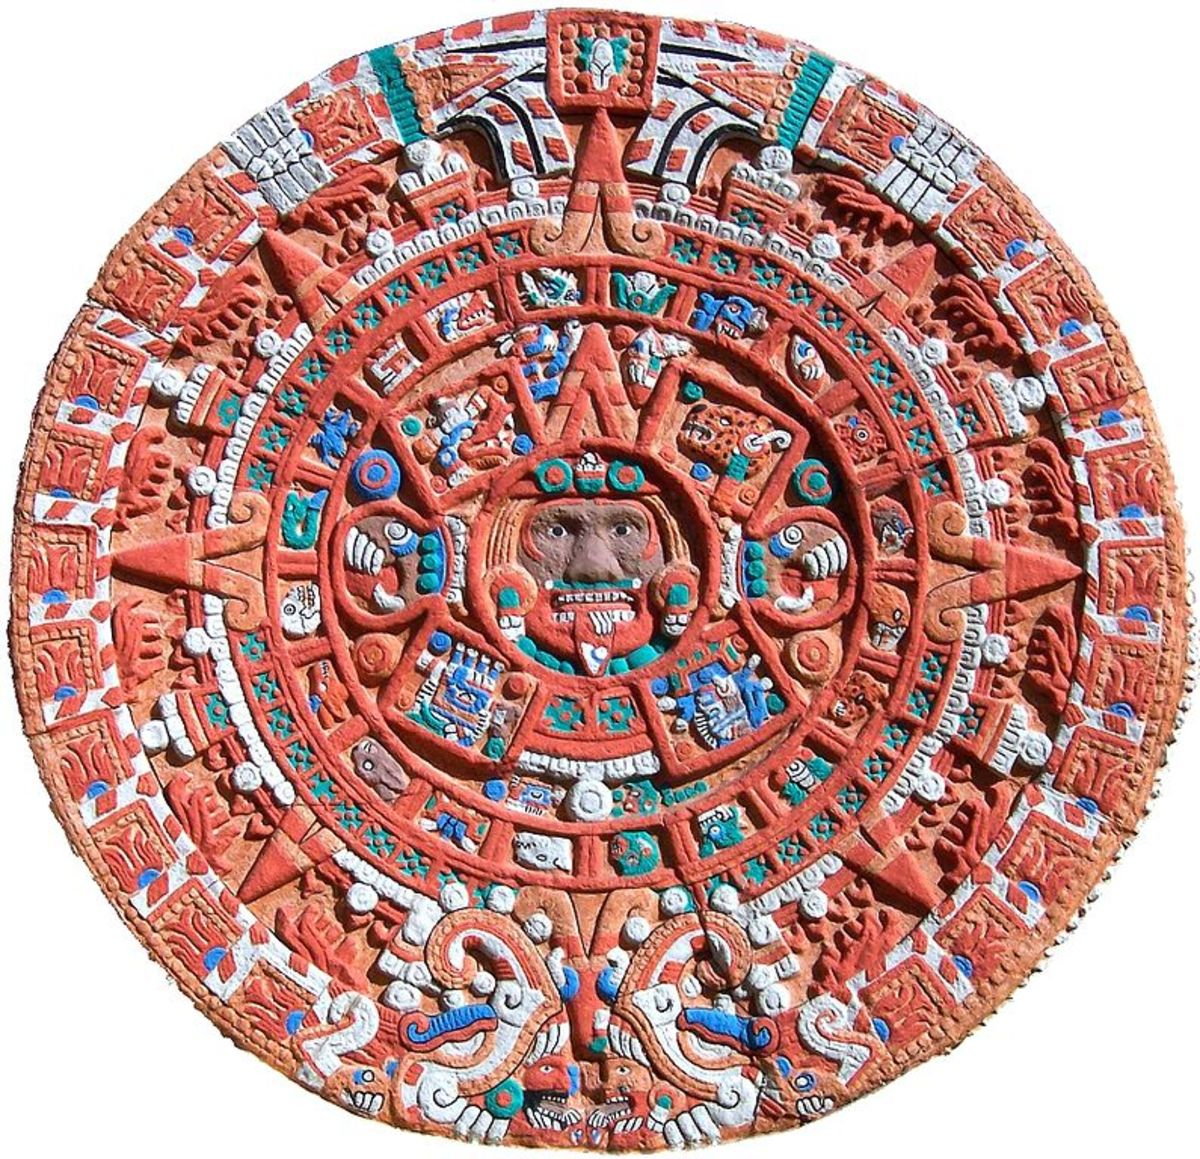 A colorized version of the Aztec calendar sun stone